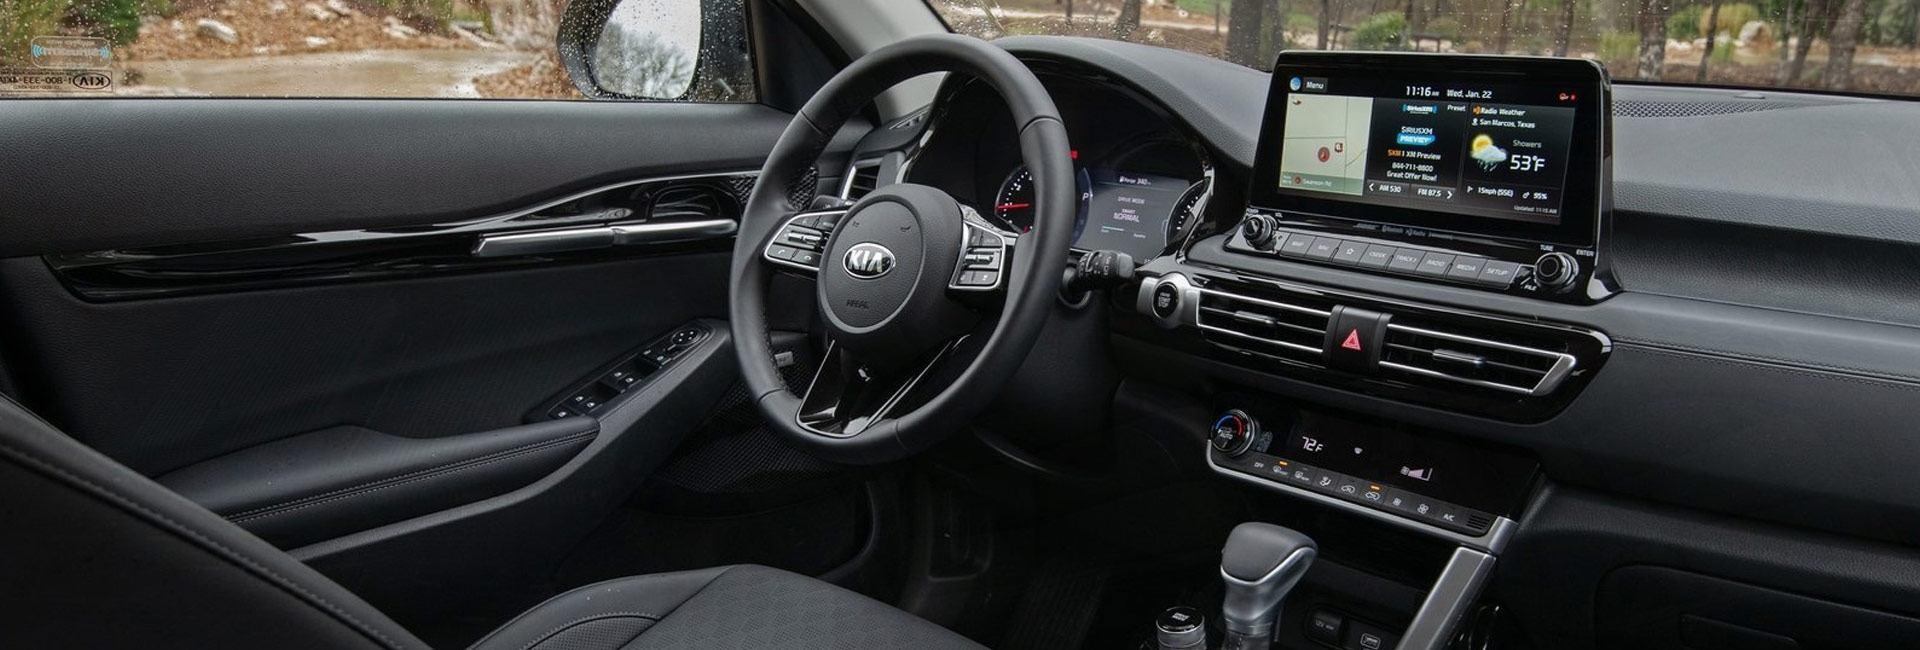 Picture of the interior of the new 2021 Kia Seltos